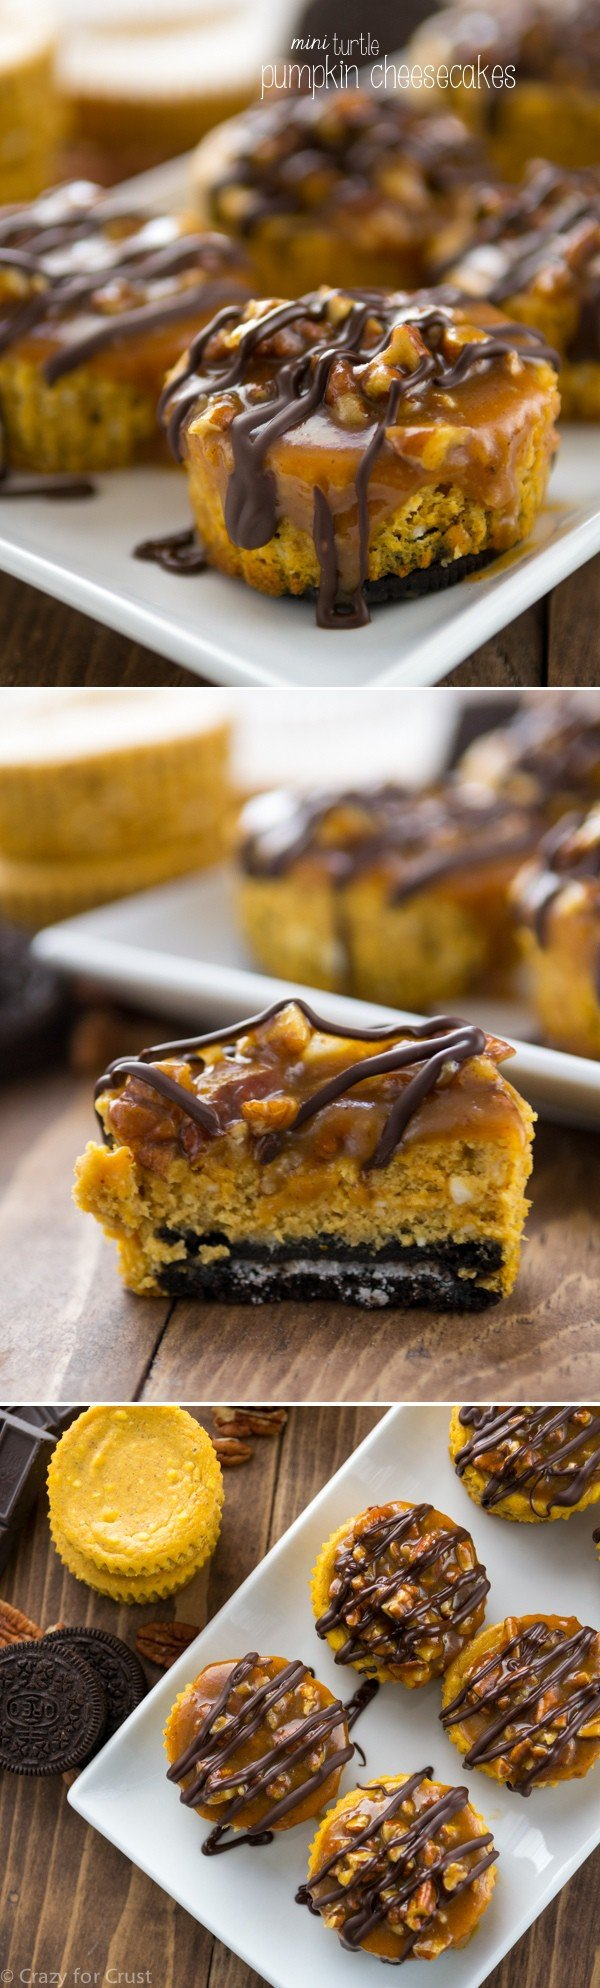 Mini Turtle Pumpkin Cheesecakes with an Oreo Crust and topped with caramel, pecans, and chocolate. Perfect for Thanksgiving!